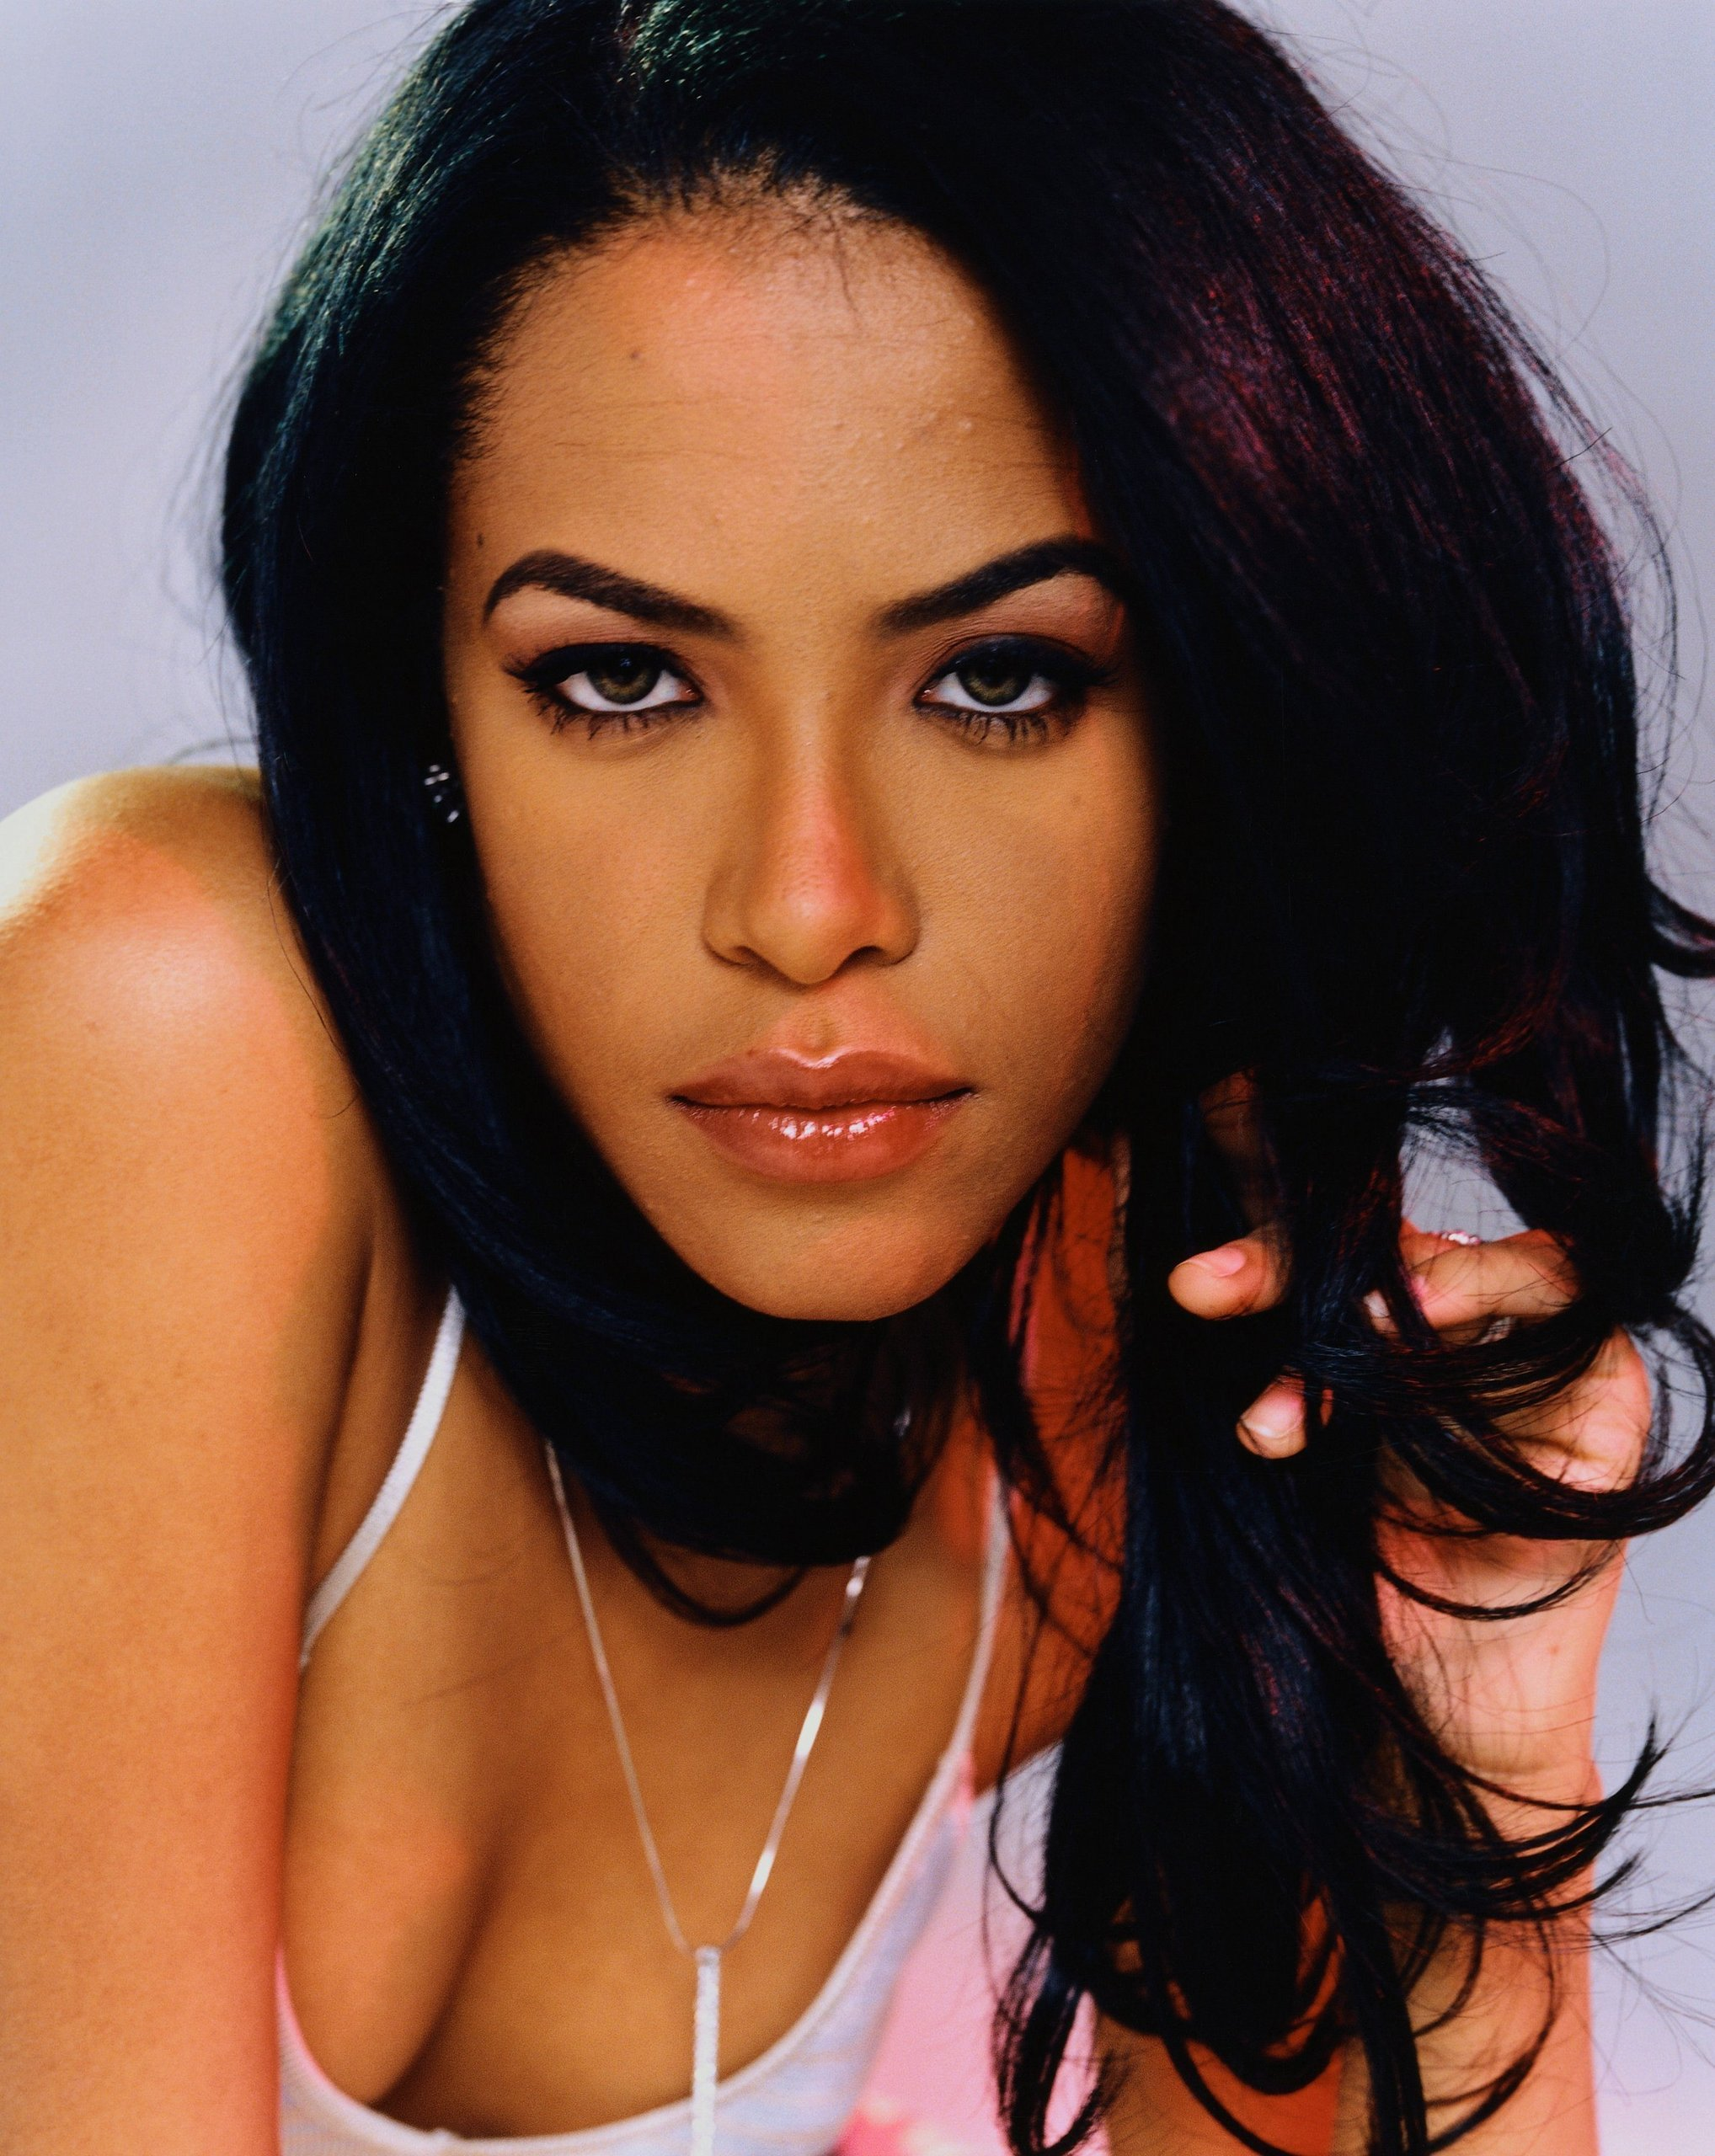 aaliyah - photo #11